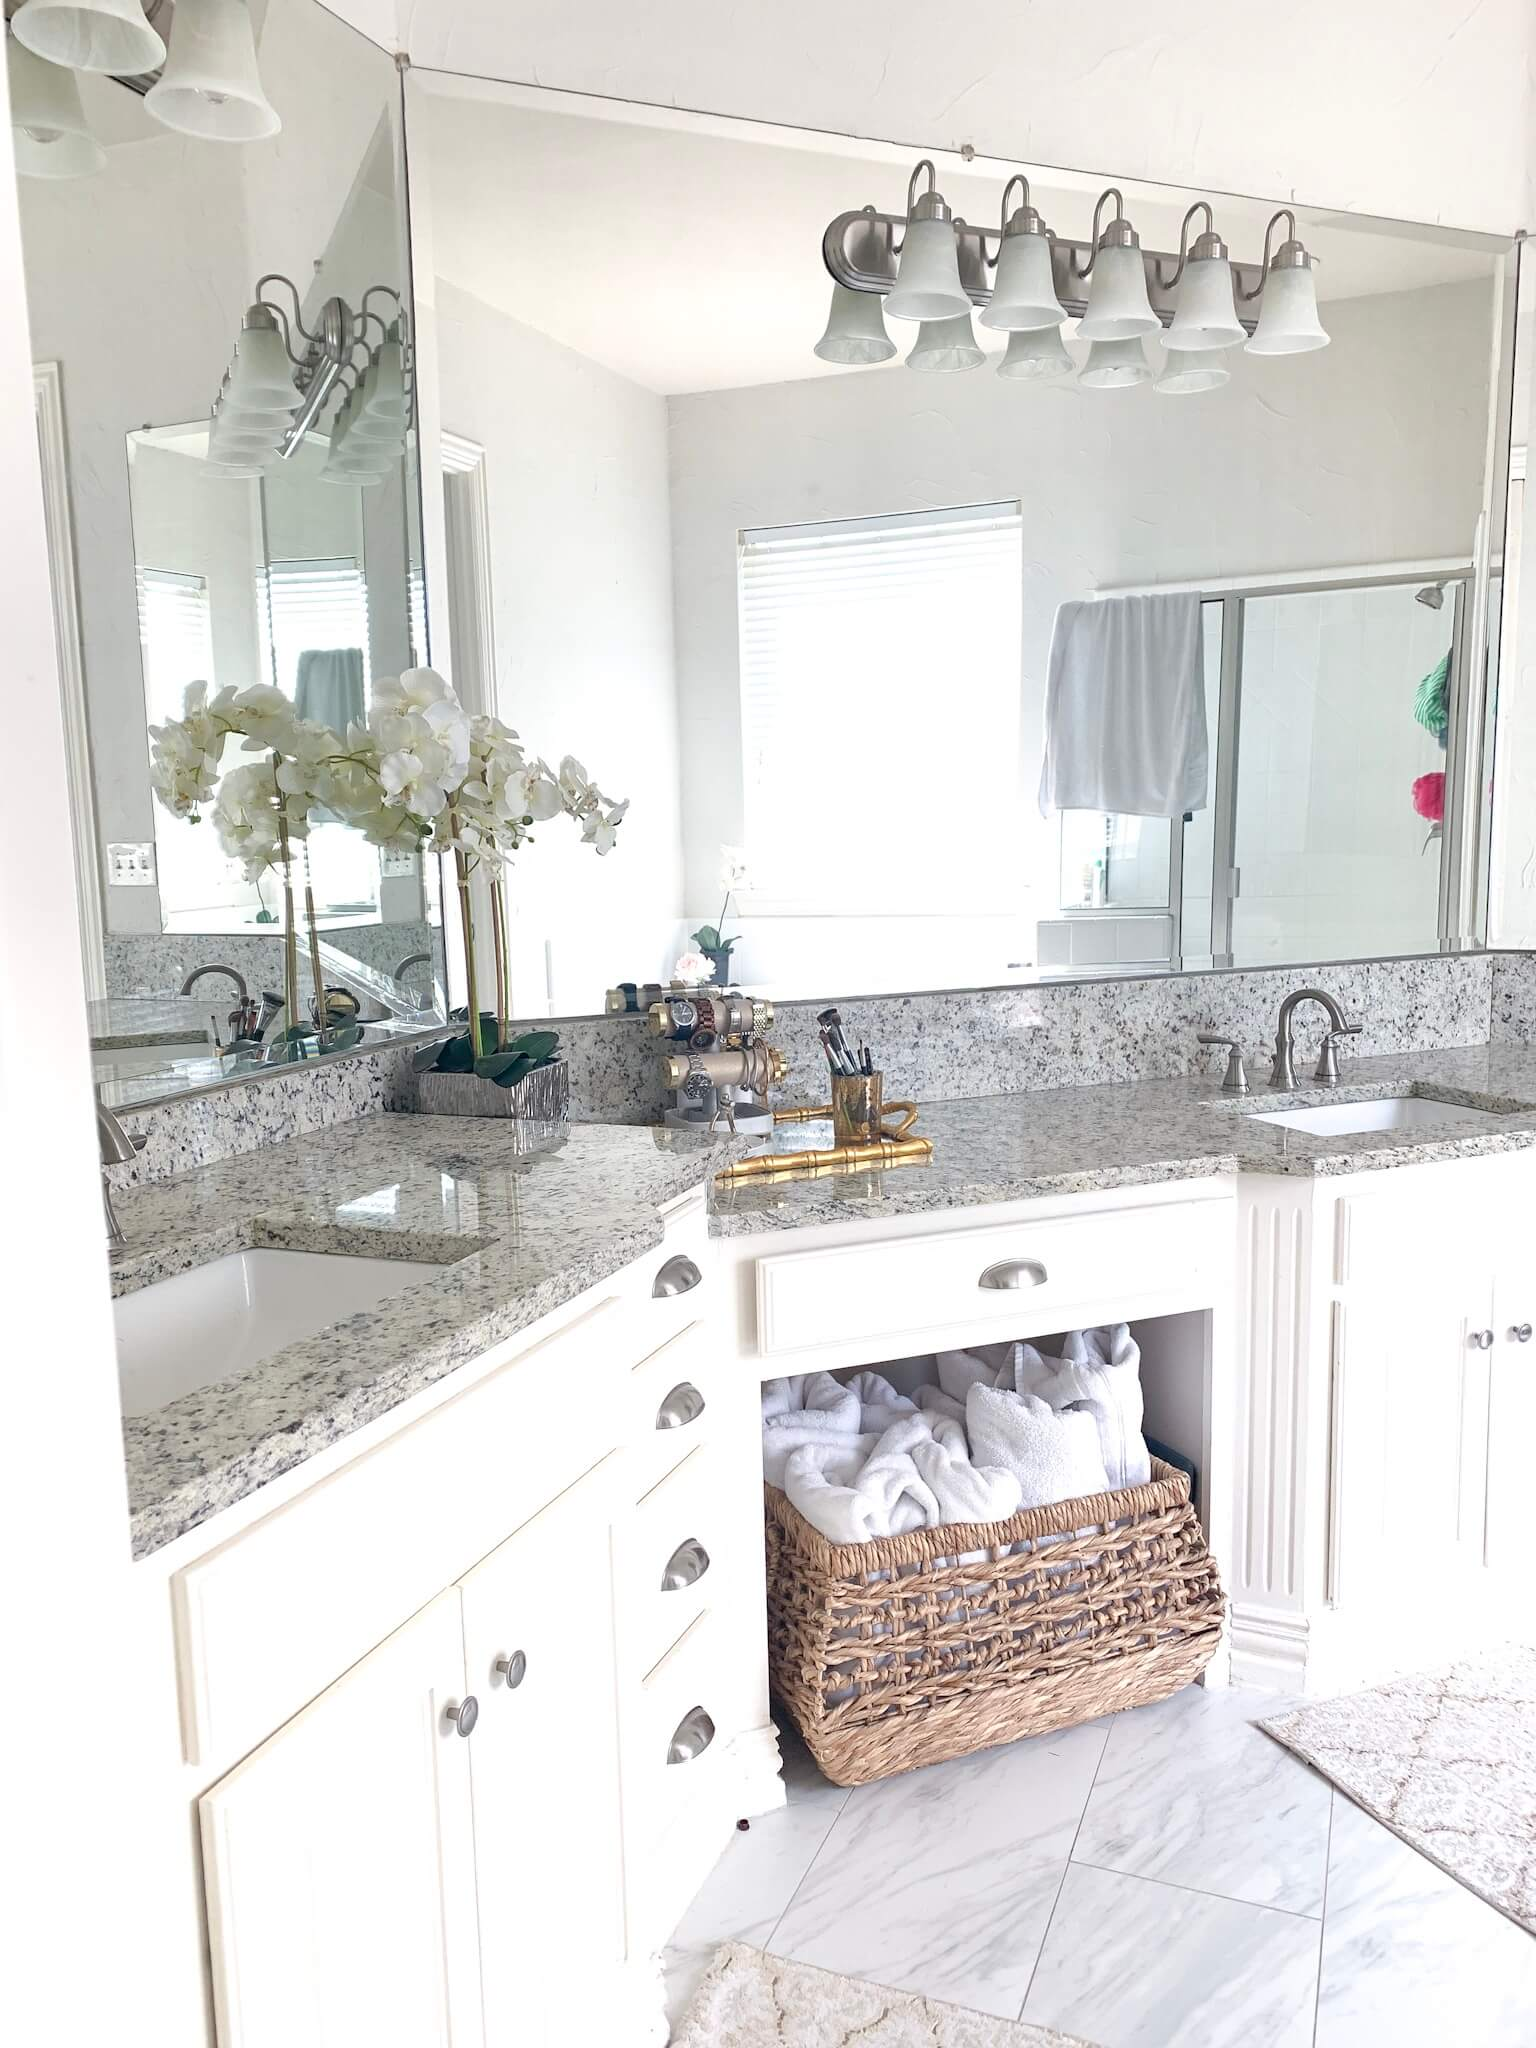 Bathroom organization ideas | style your senses